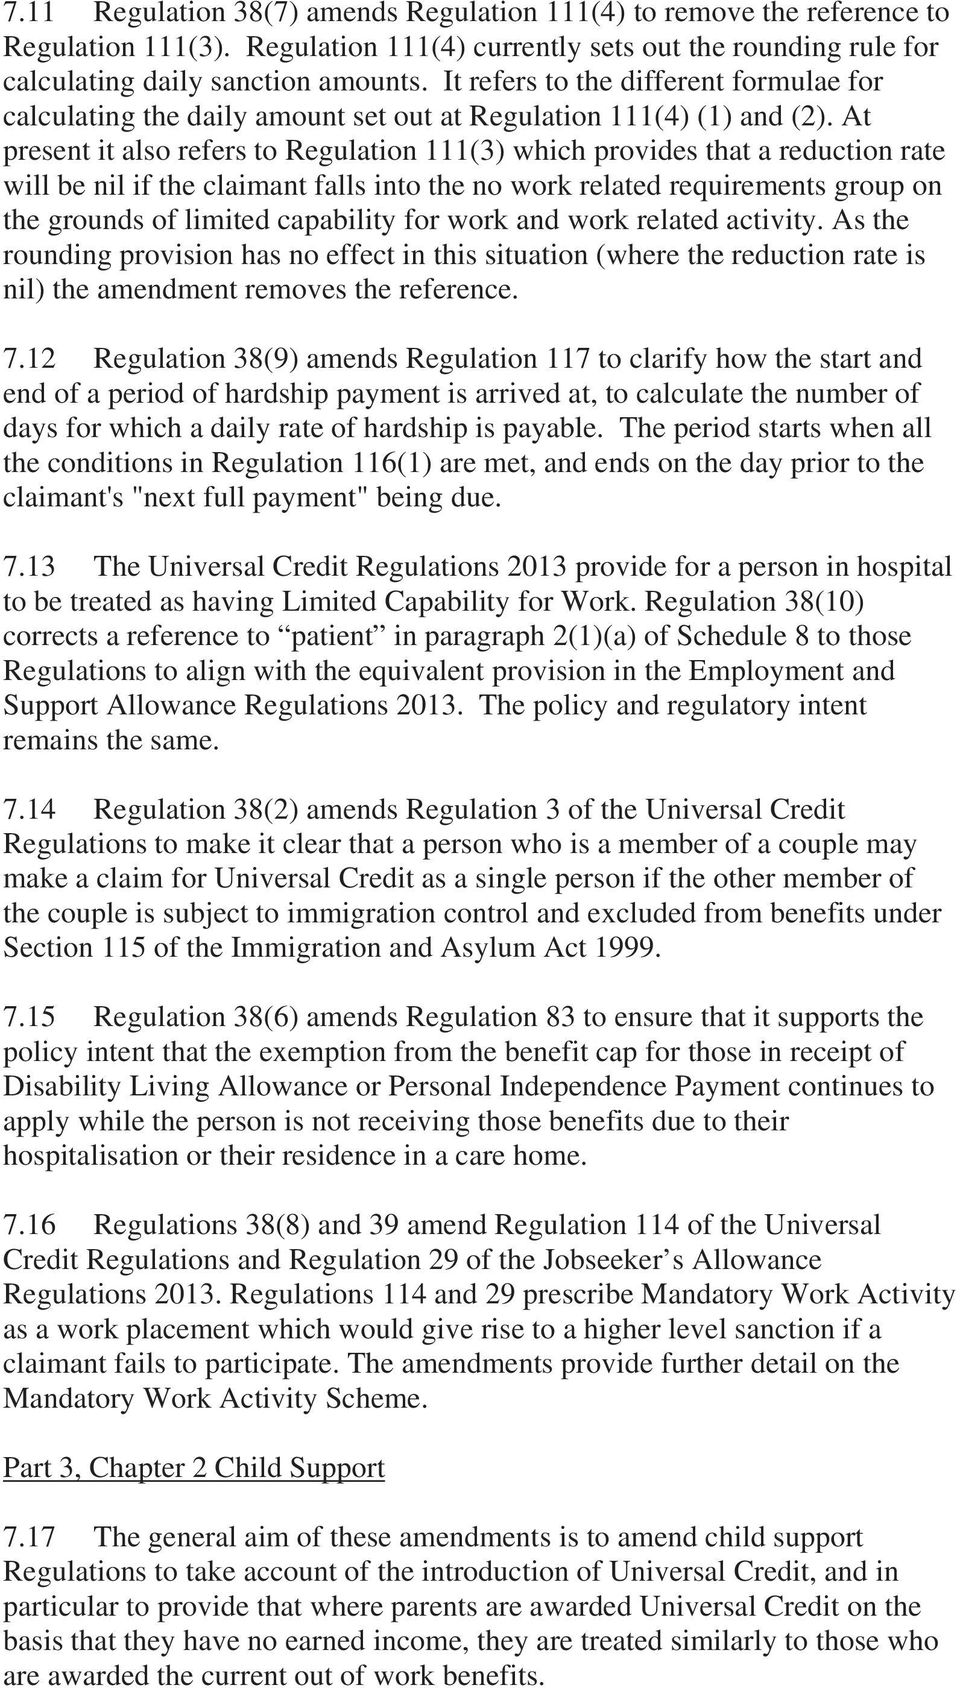 At present it also refers to Regulation 111(3) which provides that a reduction rate will be nil if the claimant falls into the no work related requirements group on the grounds of limited capability